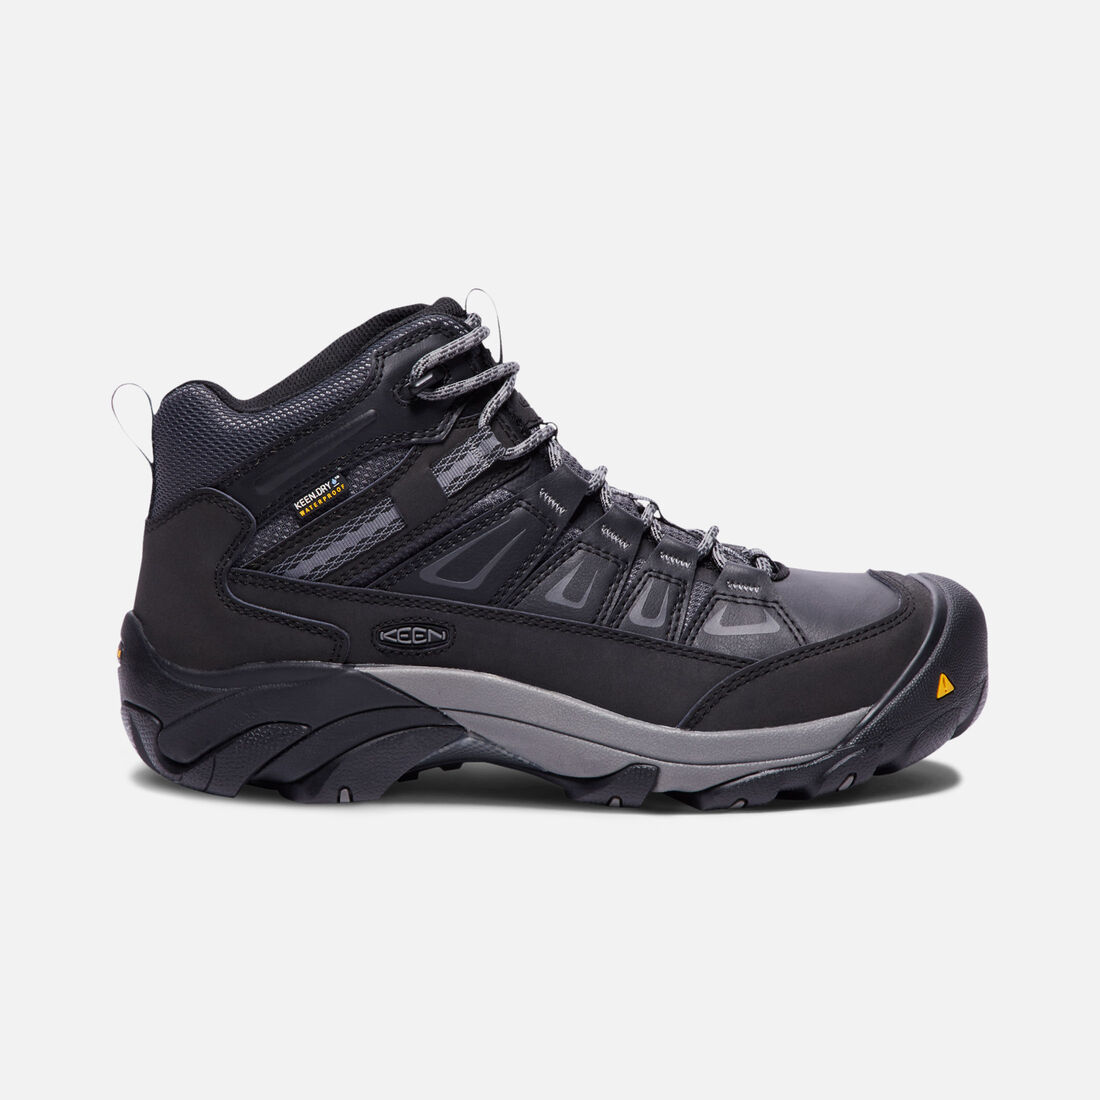 Men's BOULDER Waterproof Mid (Steel Toe) in MAGNET/GARGOYLE - large view.